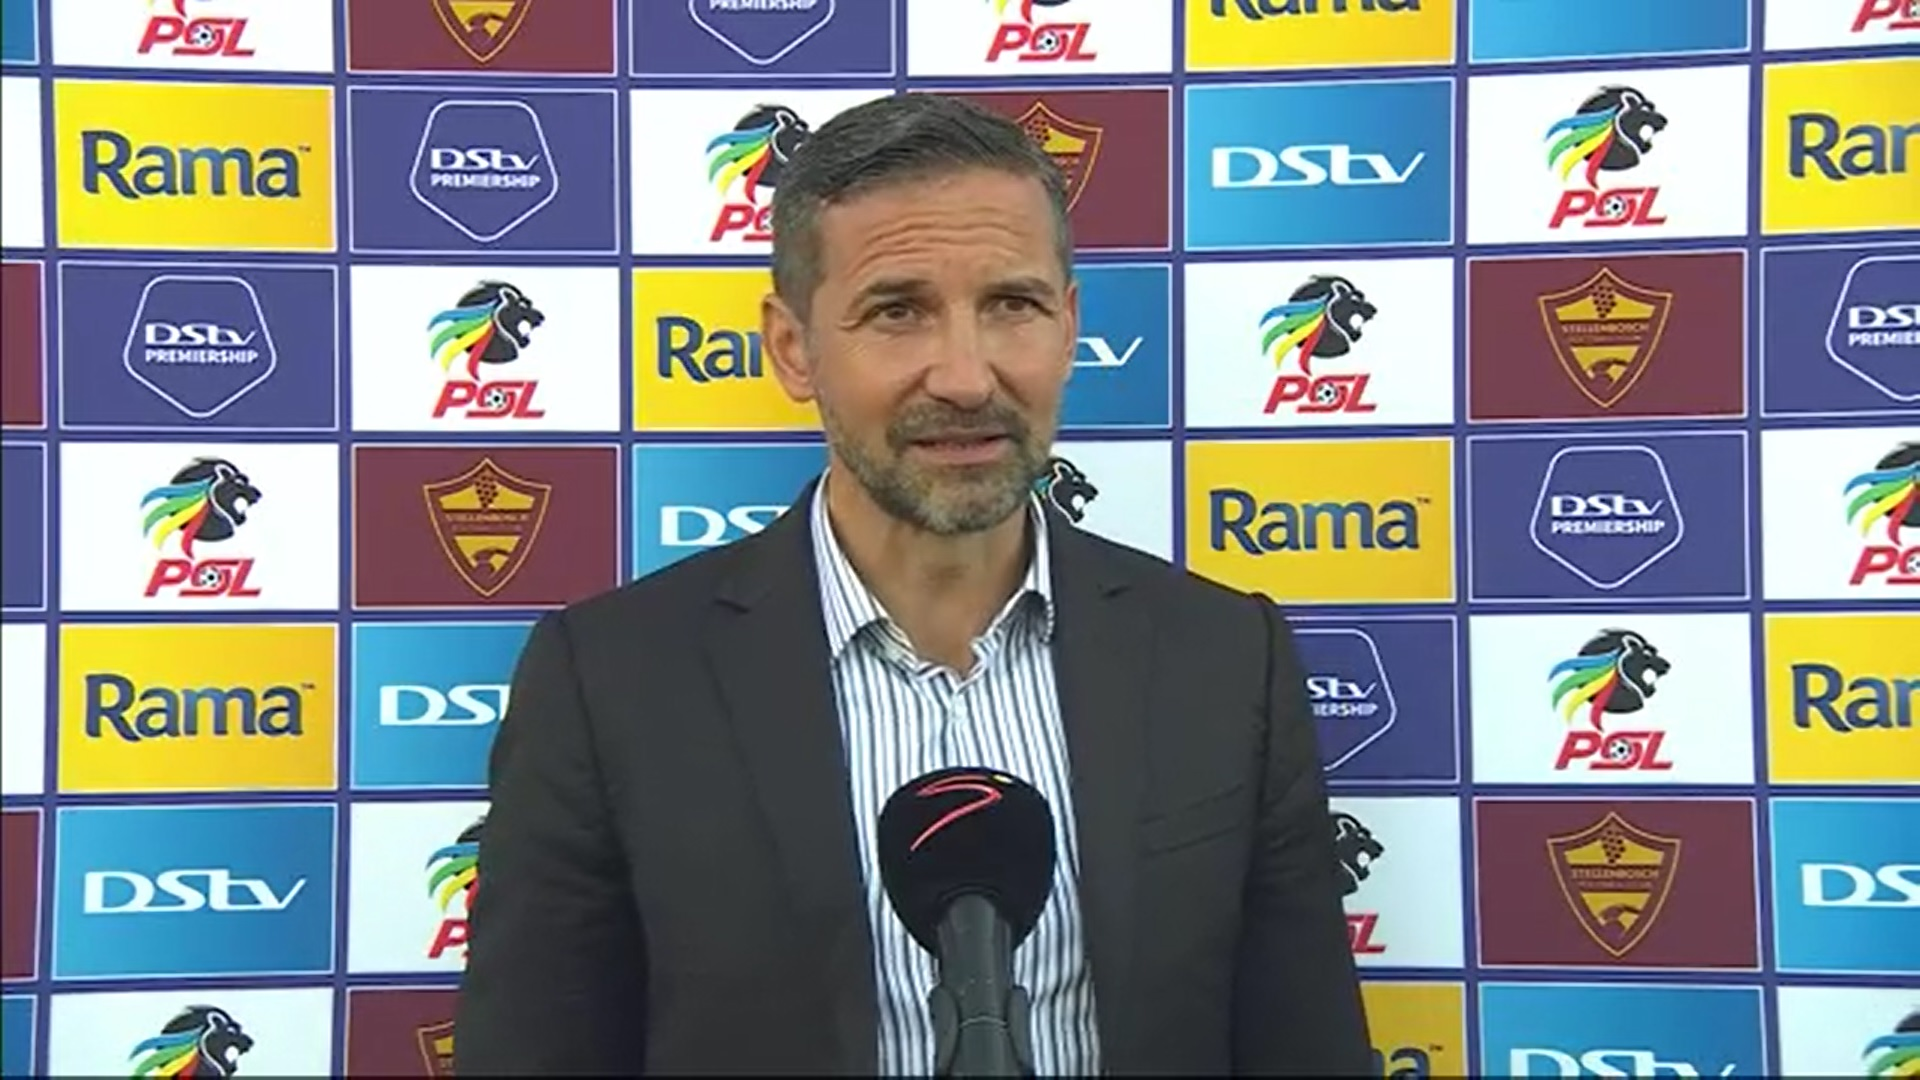 DStv Premiership | Stellenbosch FC v Orlando Pirates | Post-match interviews